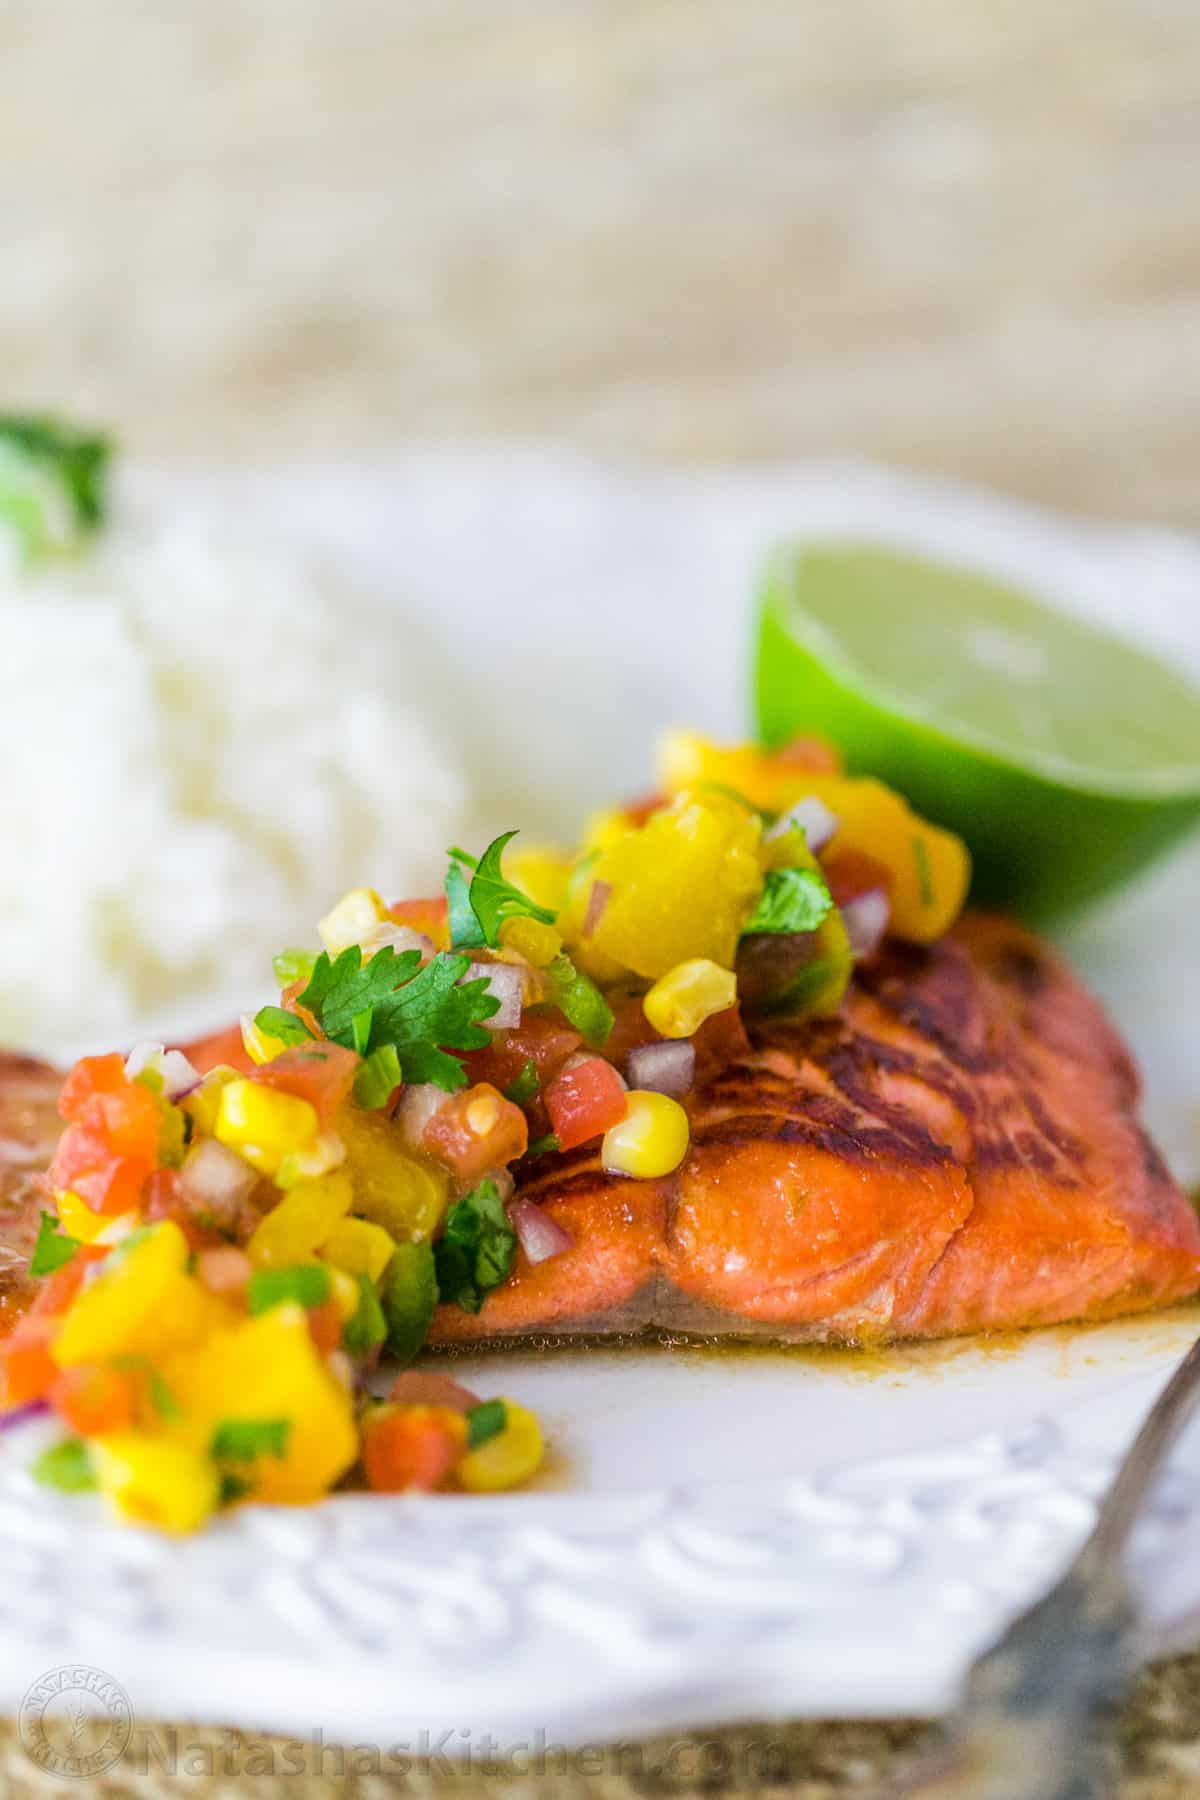 This Teriyaki Glazed Salmon With Peach Salsa Is A Great Recipe To Kick Off  Your Cooking This Year It's Light, Super Healthy And Easy To Make When You  Have